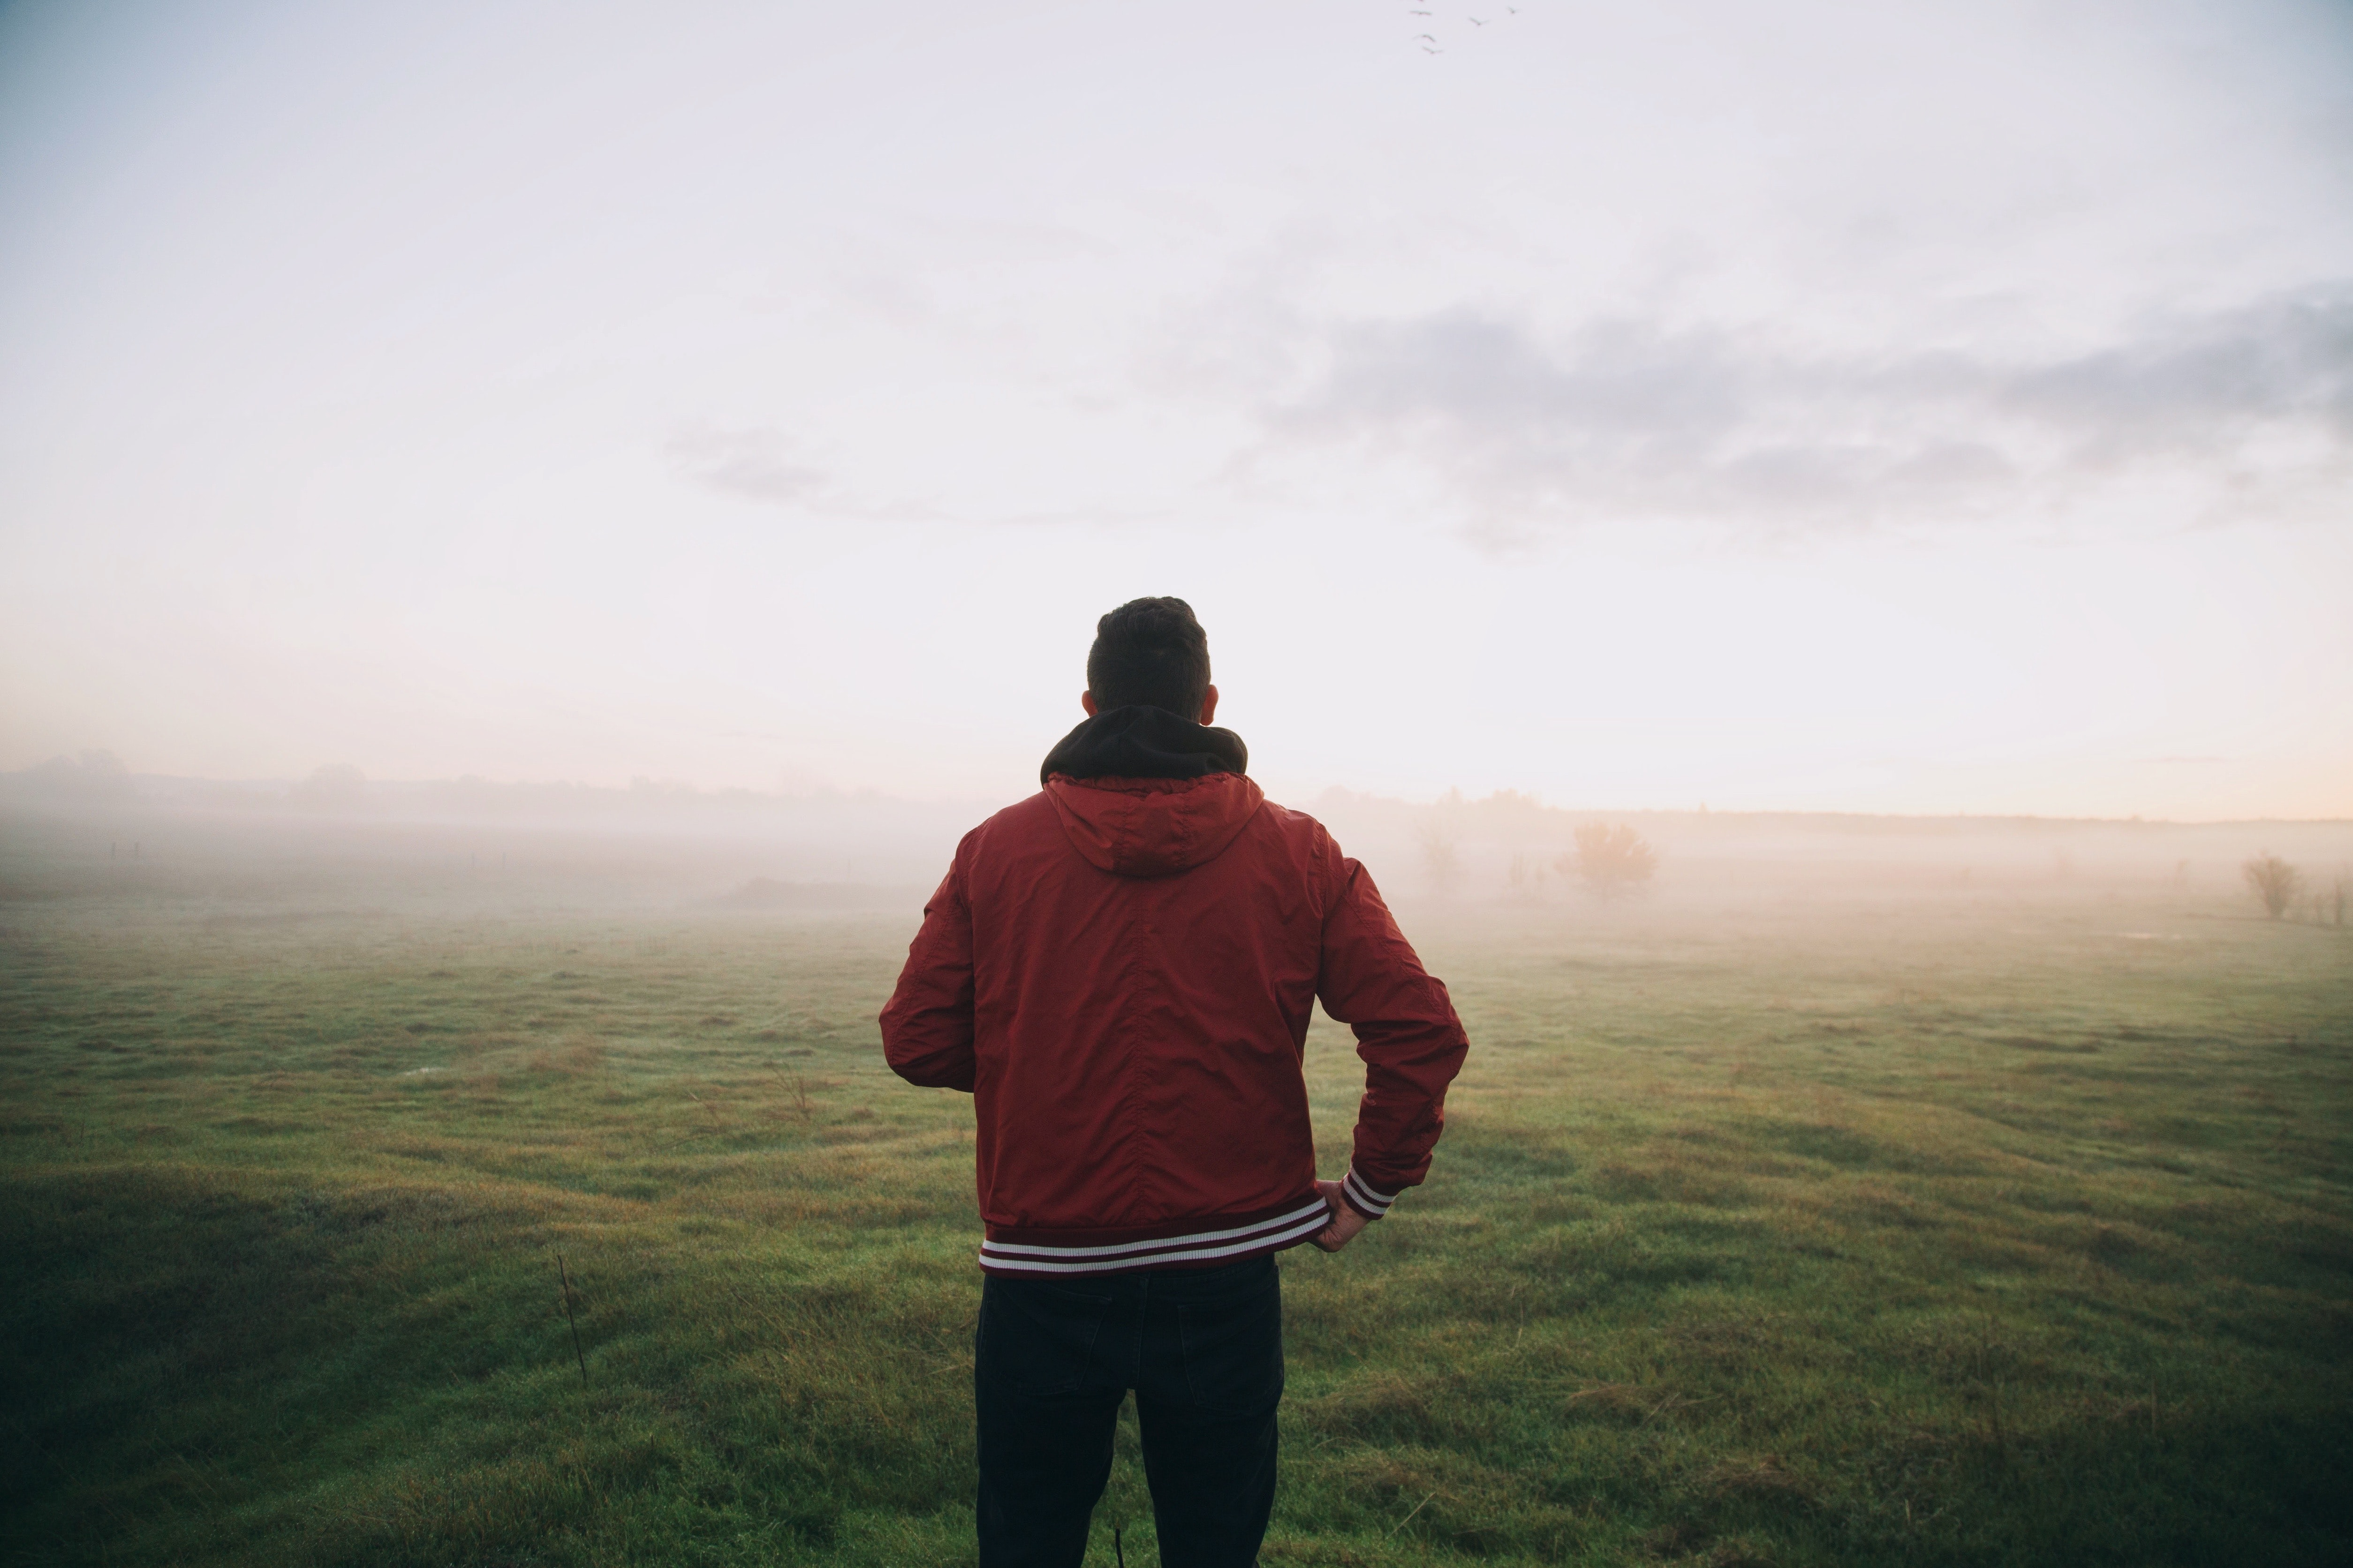 A man in a red jacket standing in a foggy green field